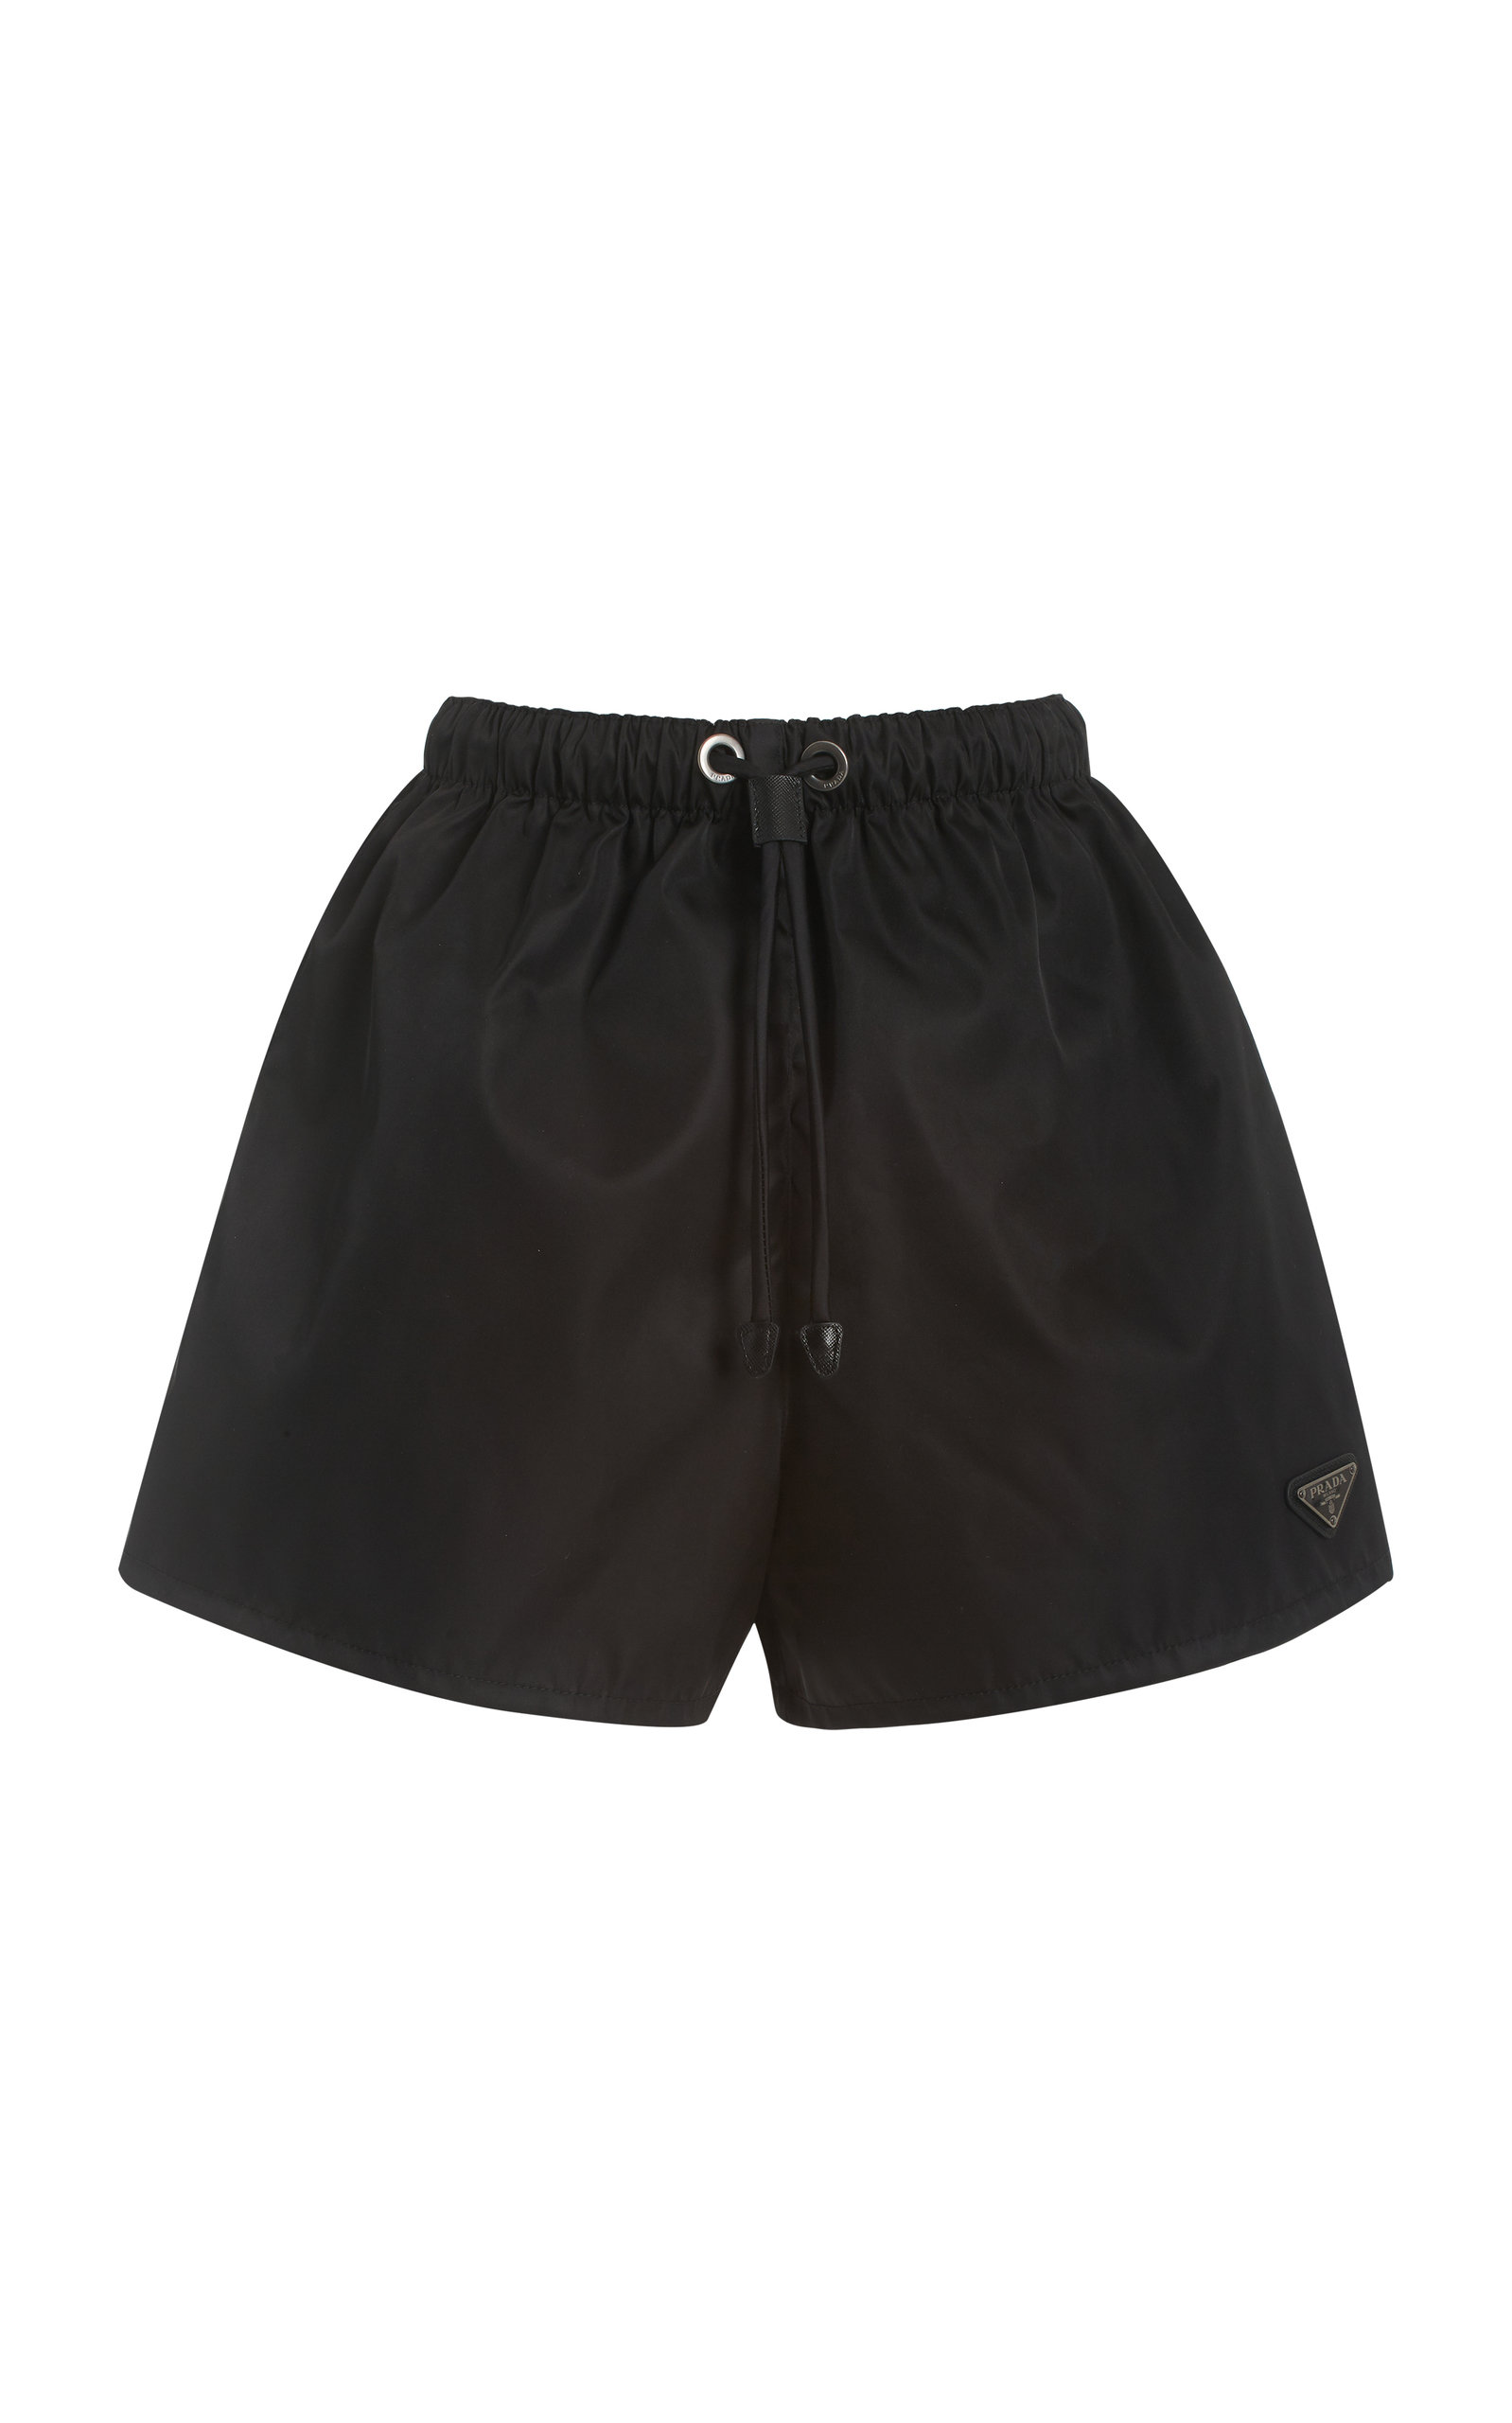 Prada LOGO-DETAILED NYLON GABARDINE SHORTS